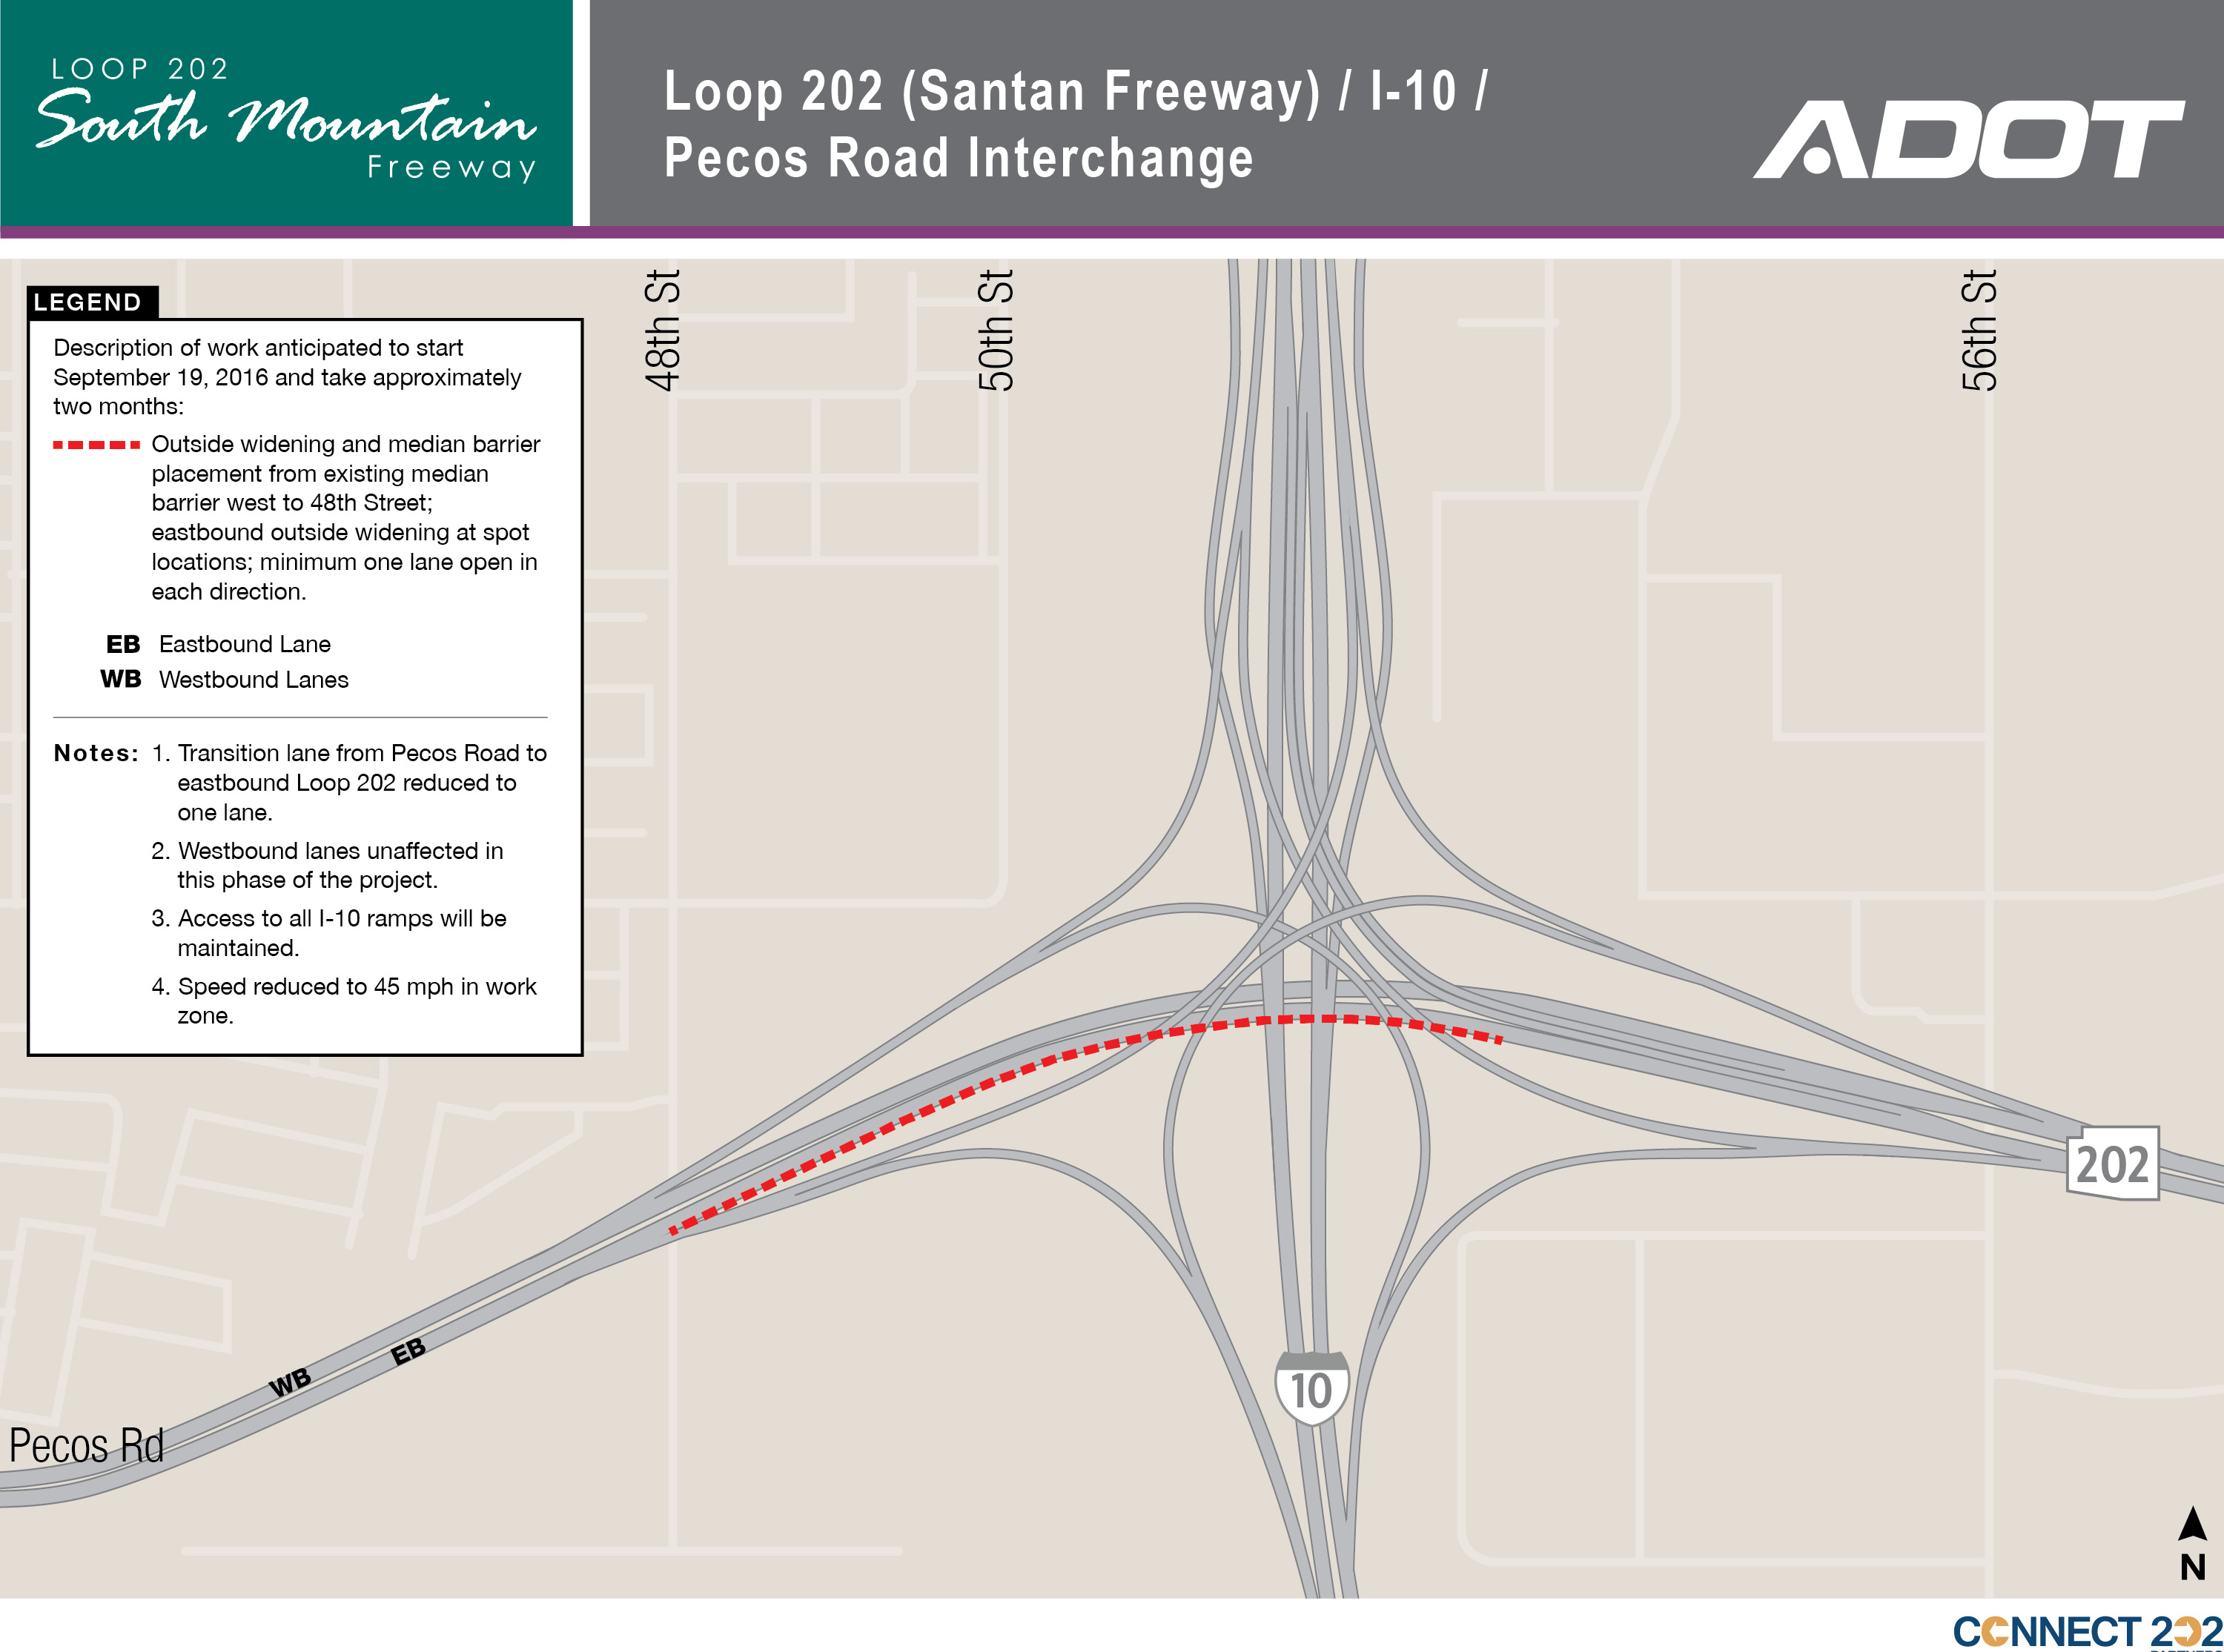 Project Map for work scheduled to start on Sept. 19, 2016 at Loop 202 (Santan Freeway) / I-10 and Pecos Road